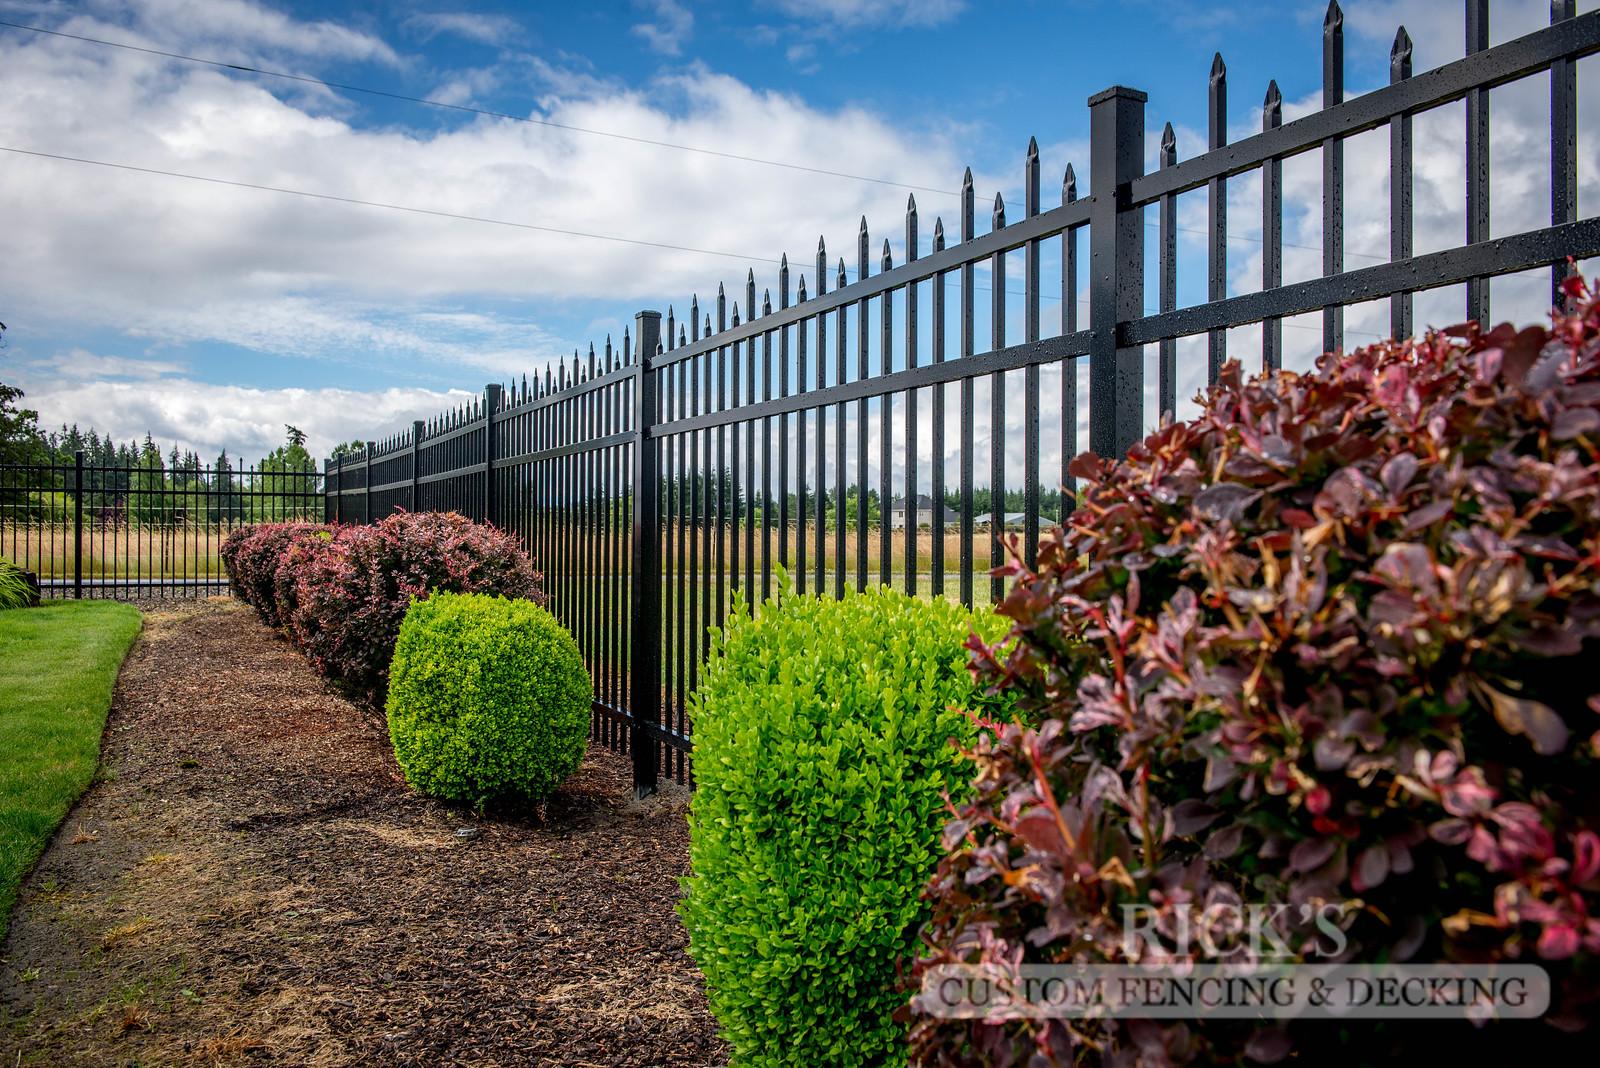 Special Order Only - Specrail Aluminum Fencing